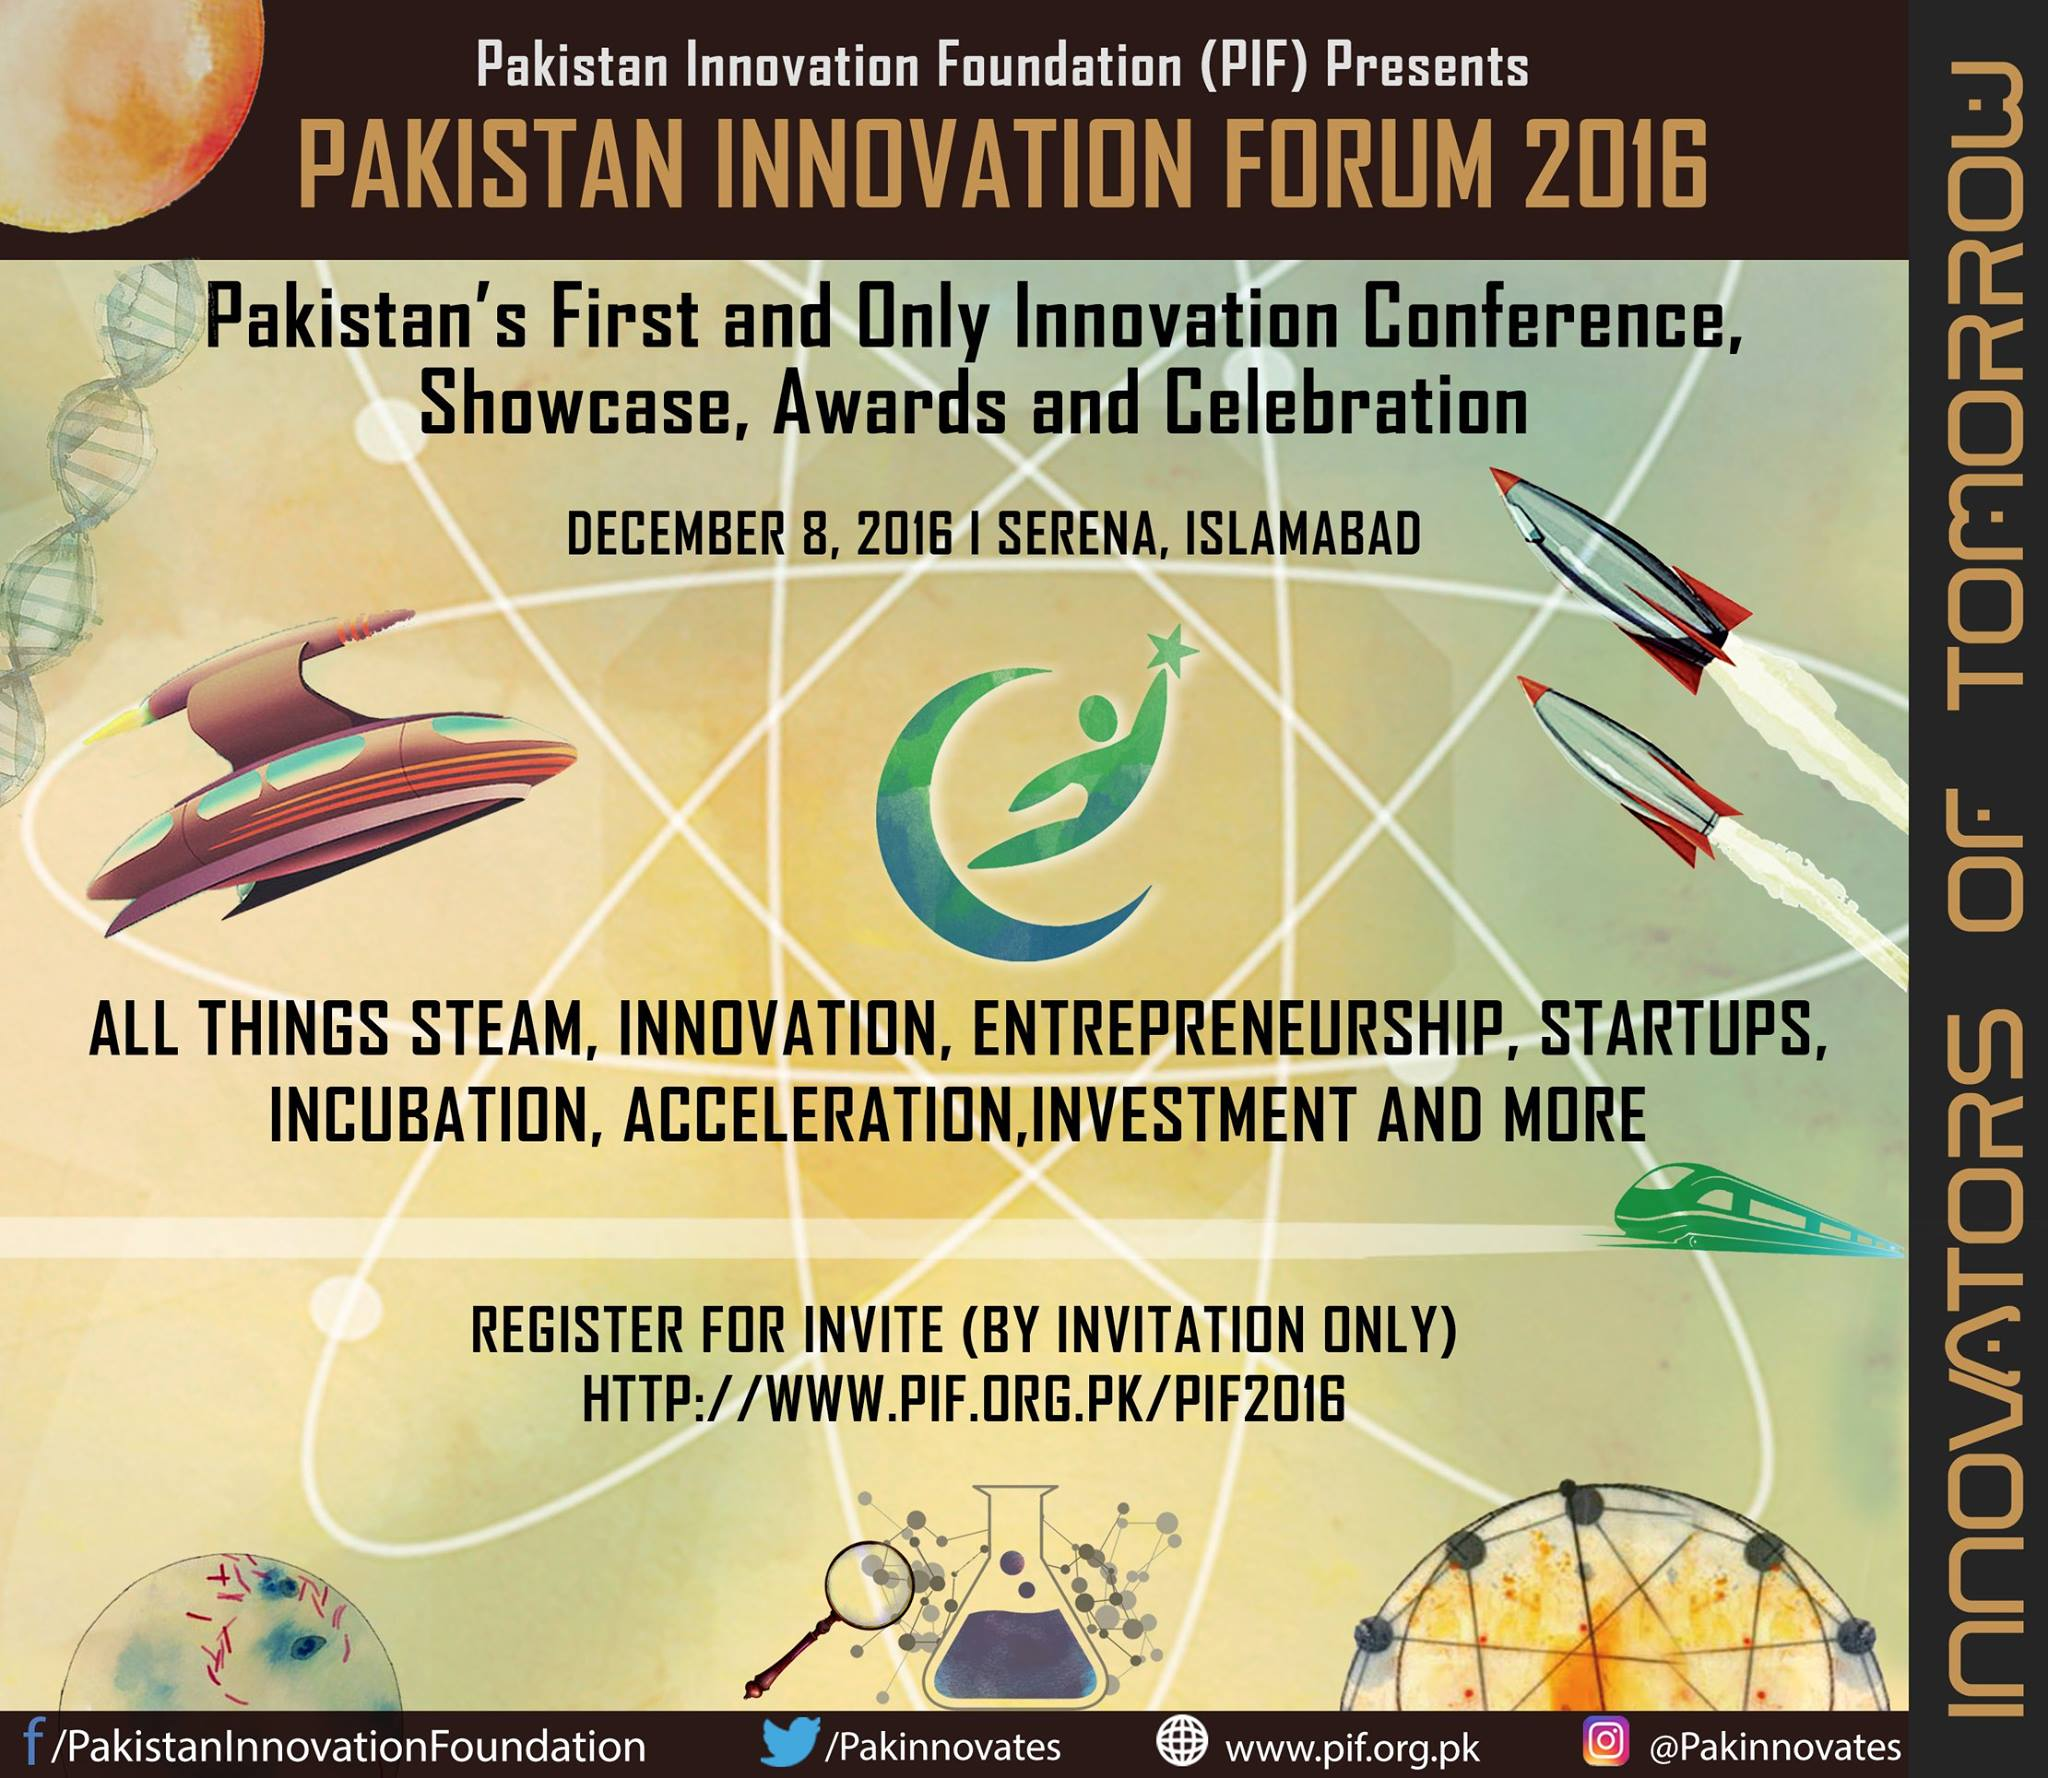 Pakistan Innovation Forum 2016